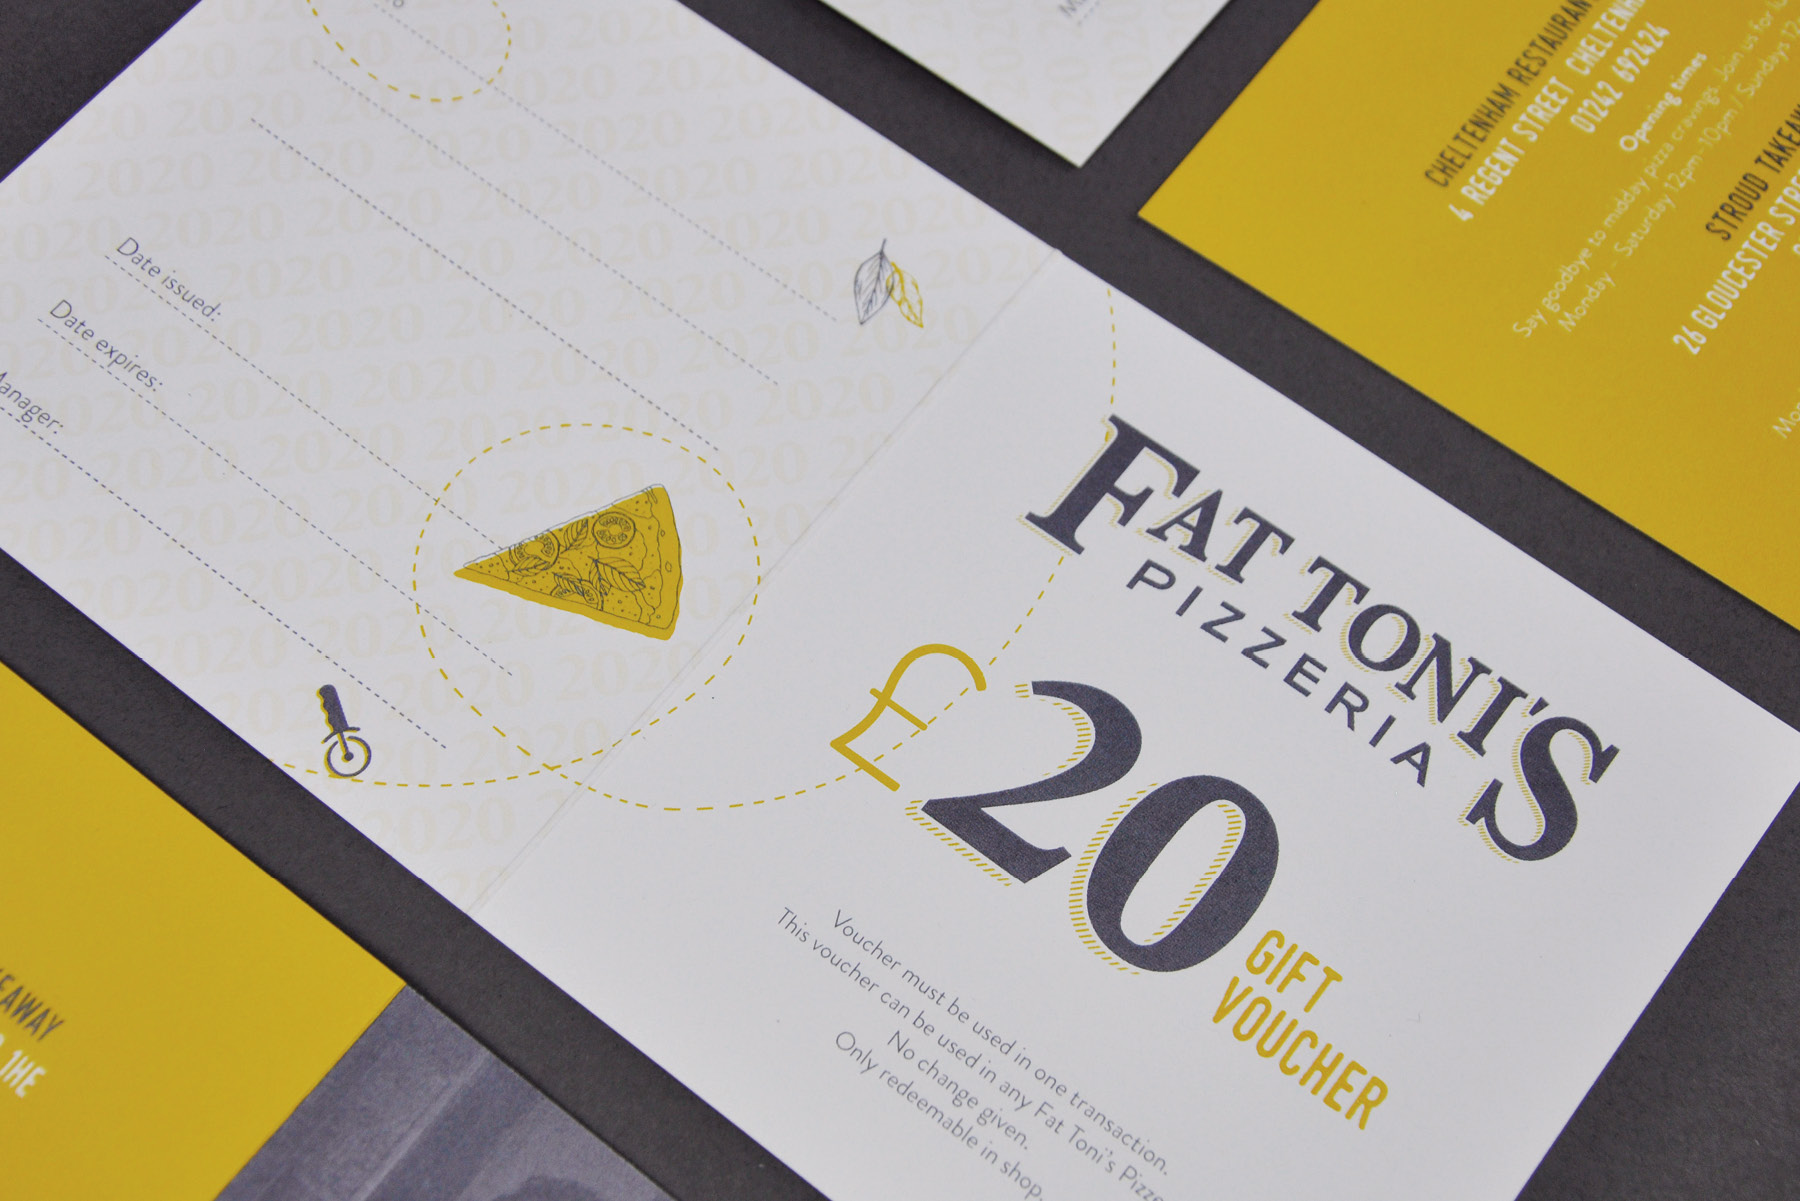 Fat Toni's Voucher Detail